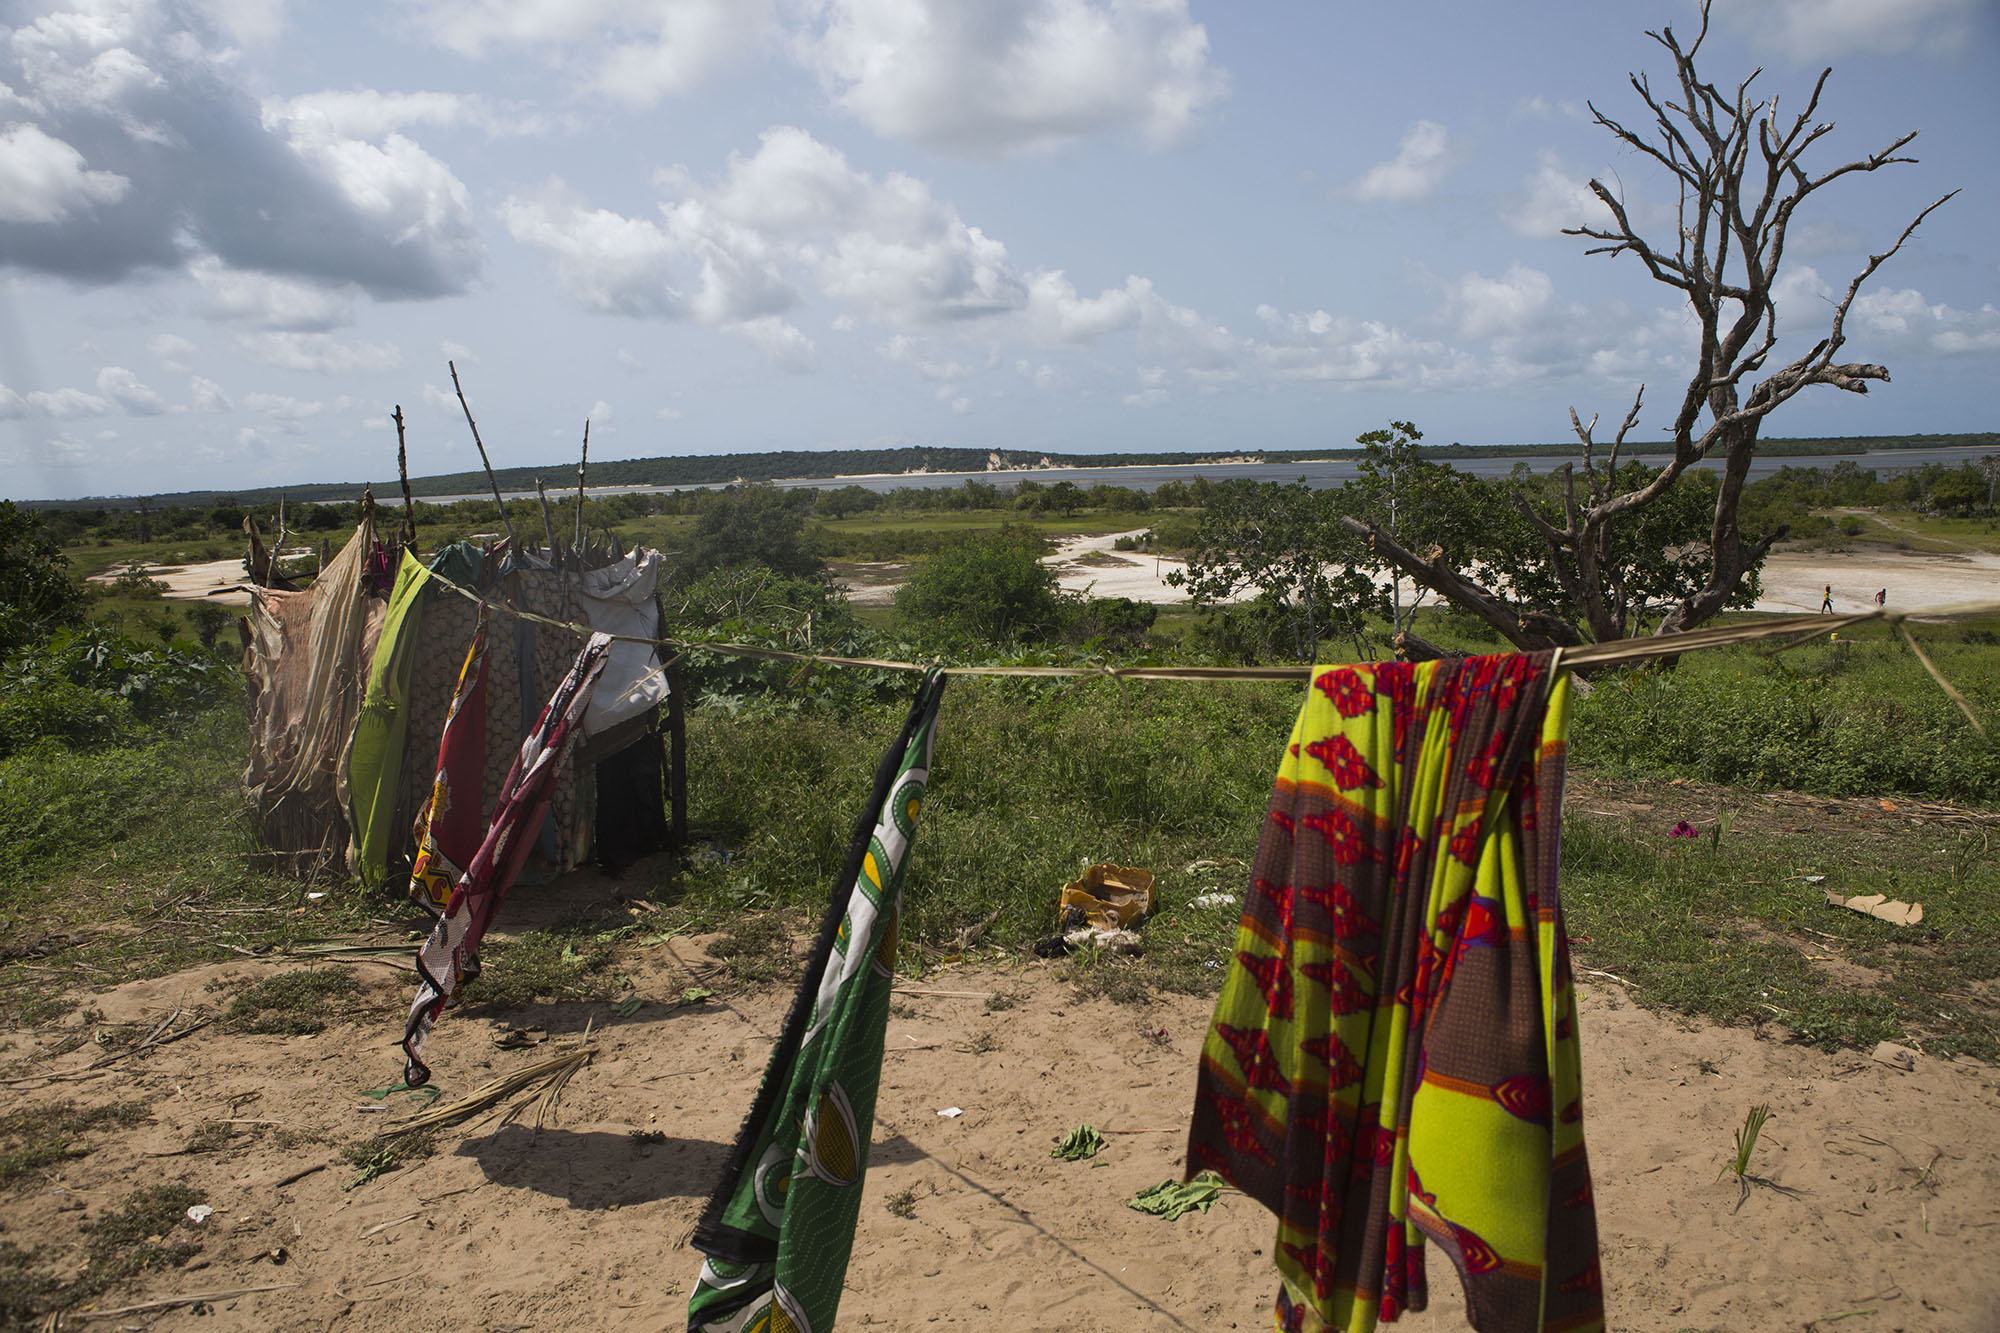 The-islands-of-Lamu-are-constantly-under-terror-thret-from-Al-Shabaab